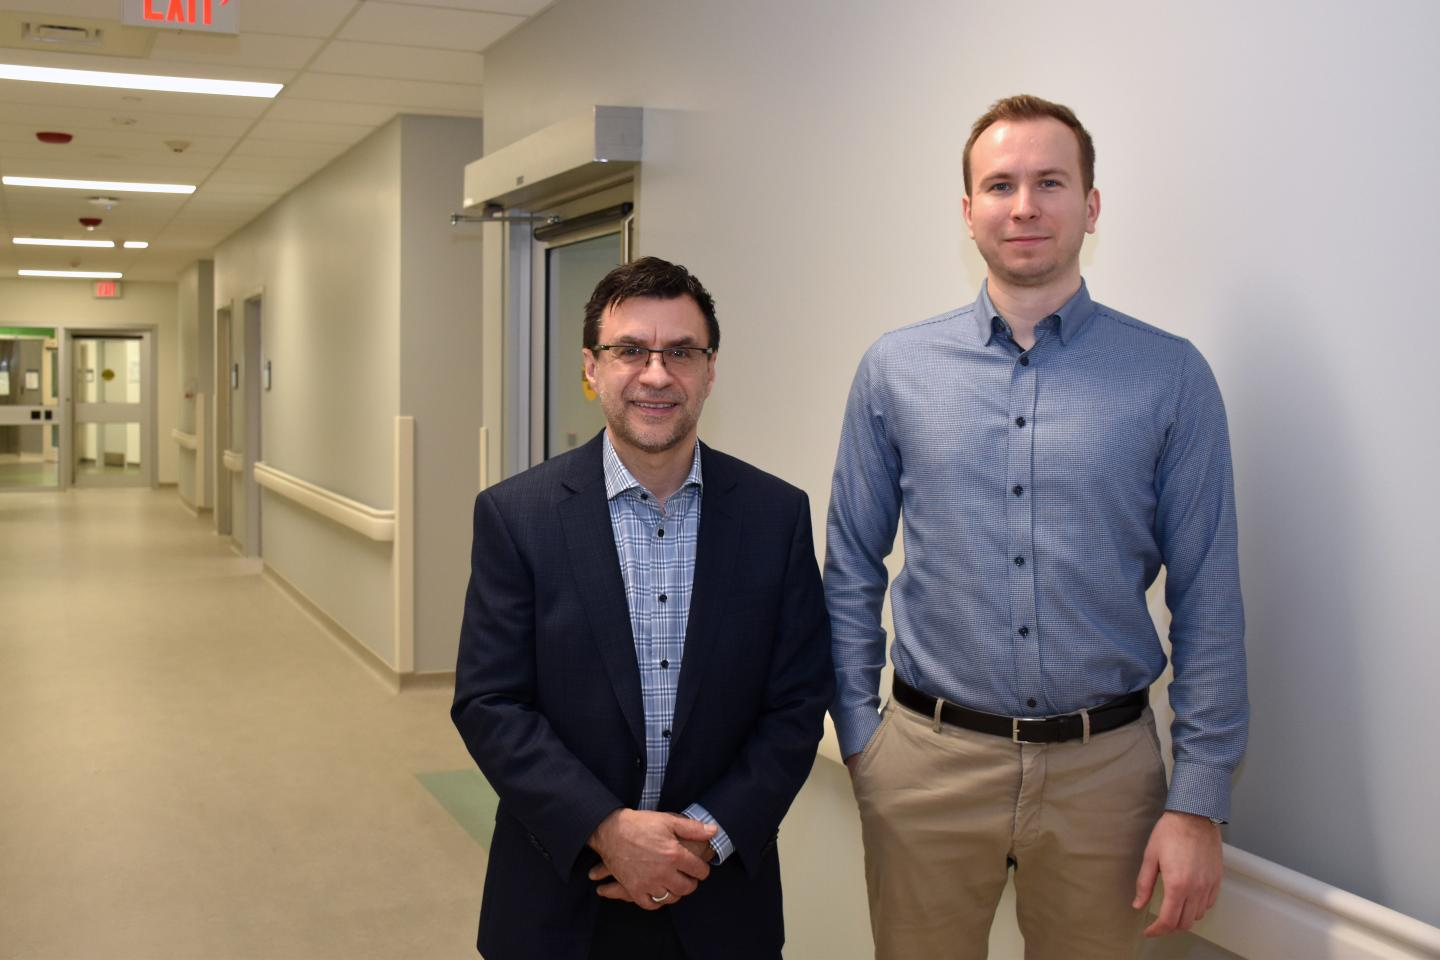 Drs. Don Richardson and Anthony Nazarov, Lawson Health Research Institute